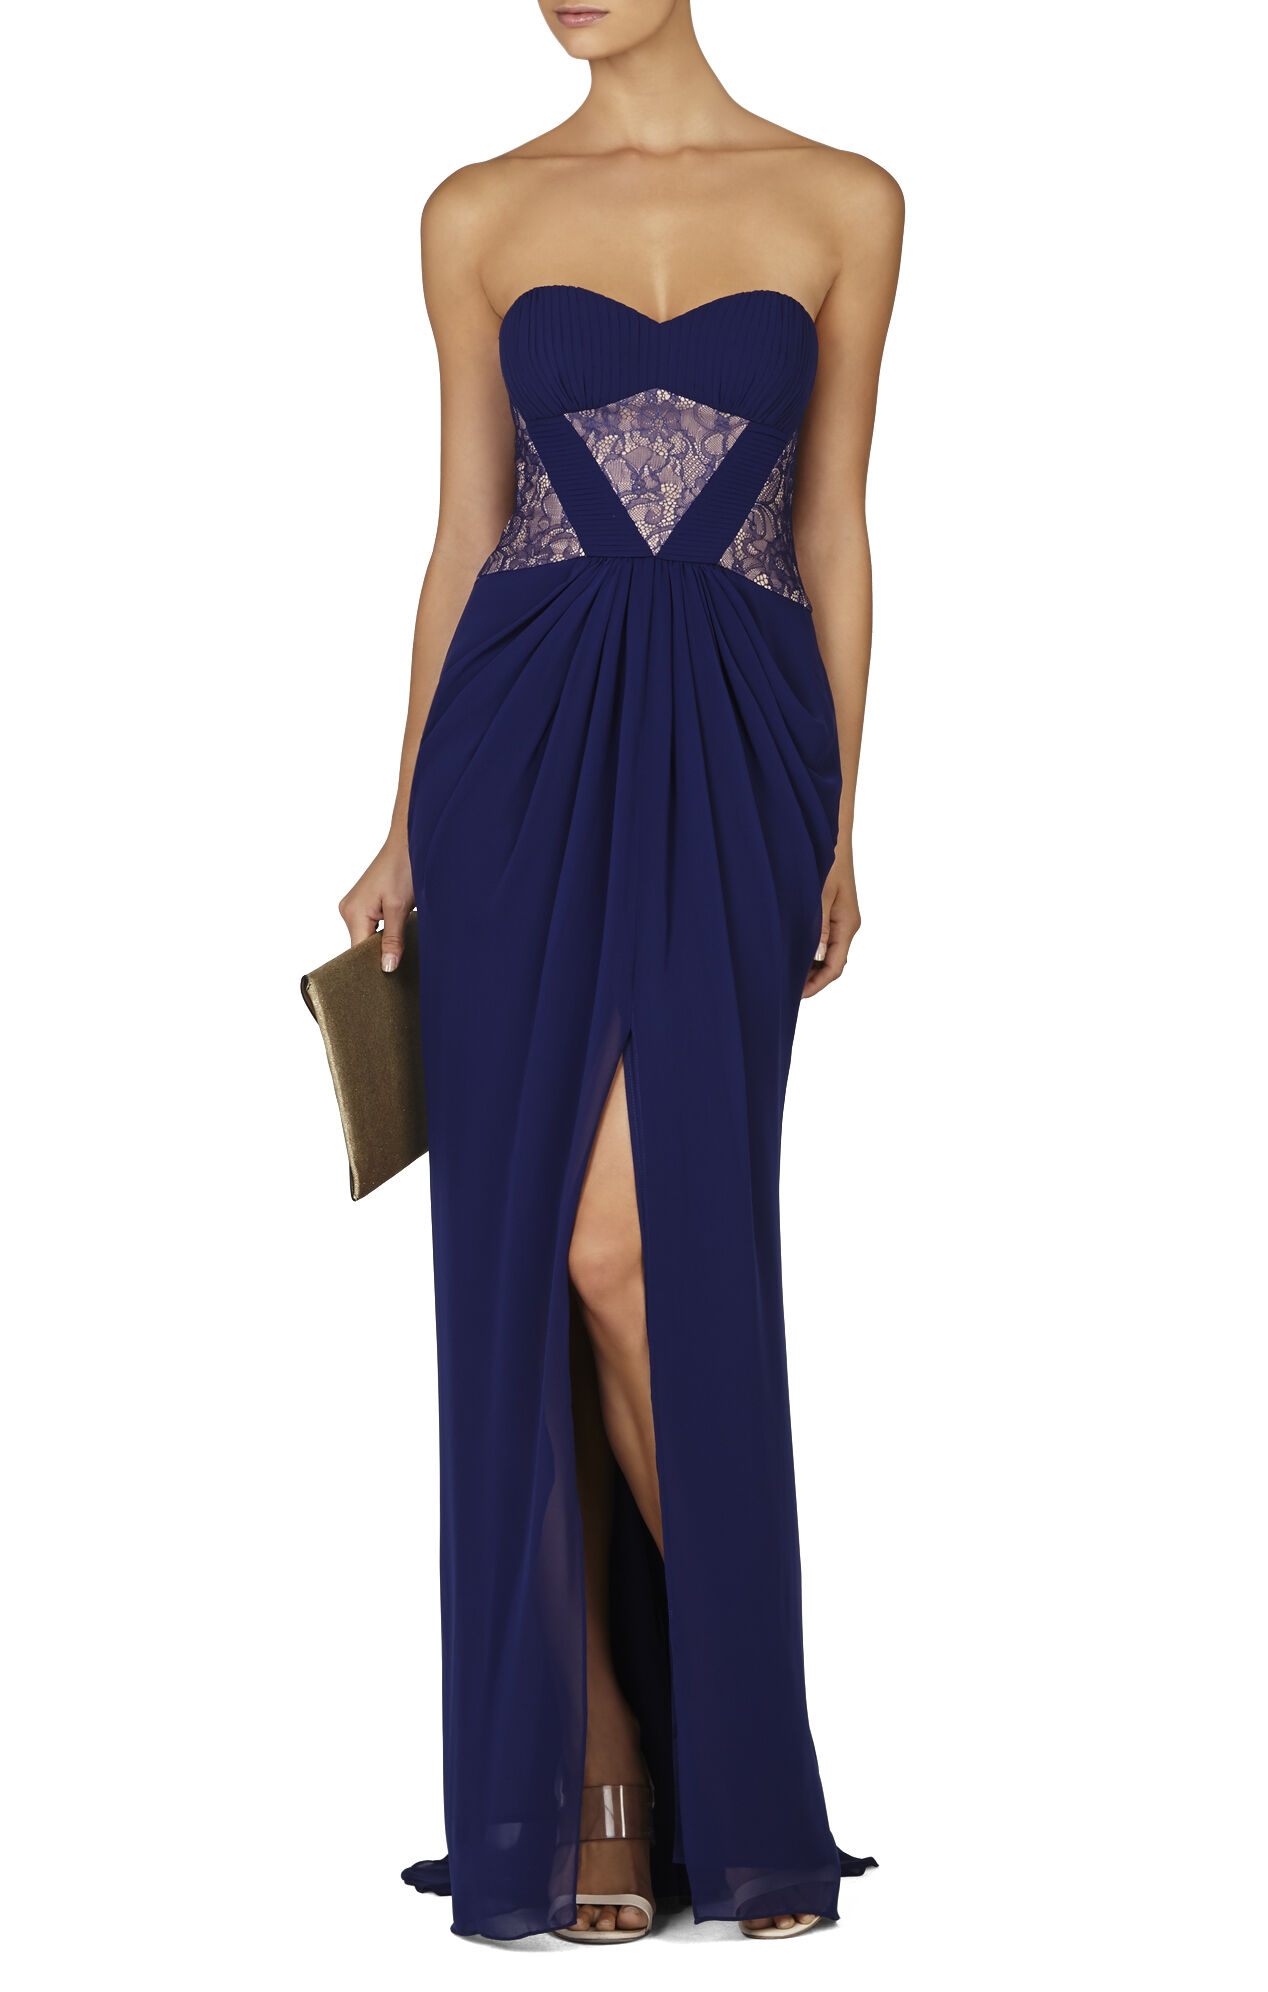 Natalea Strapless Ruched-Bodice Gown